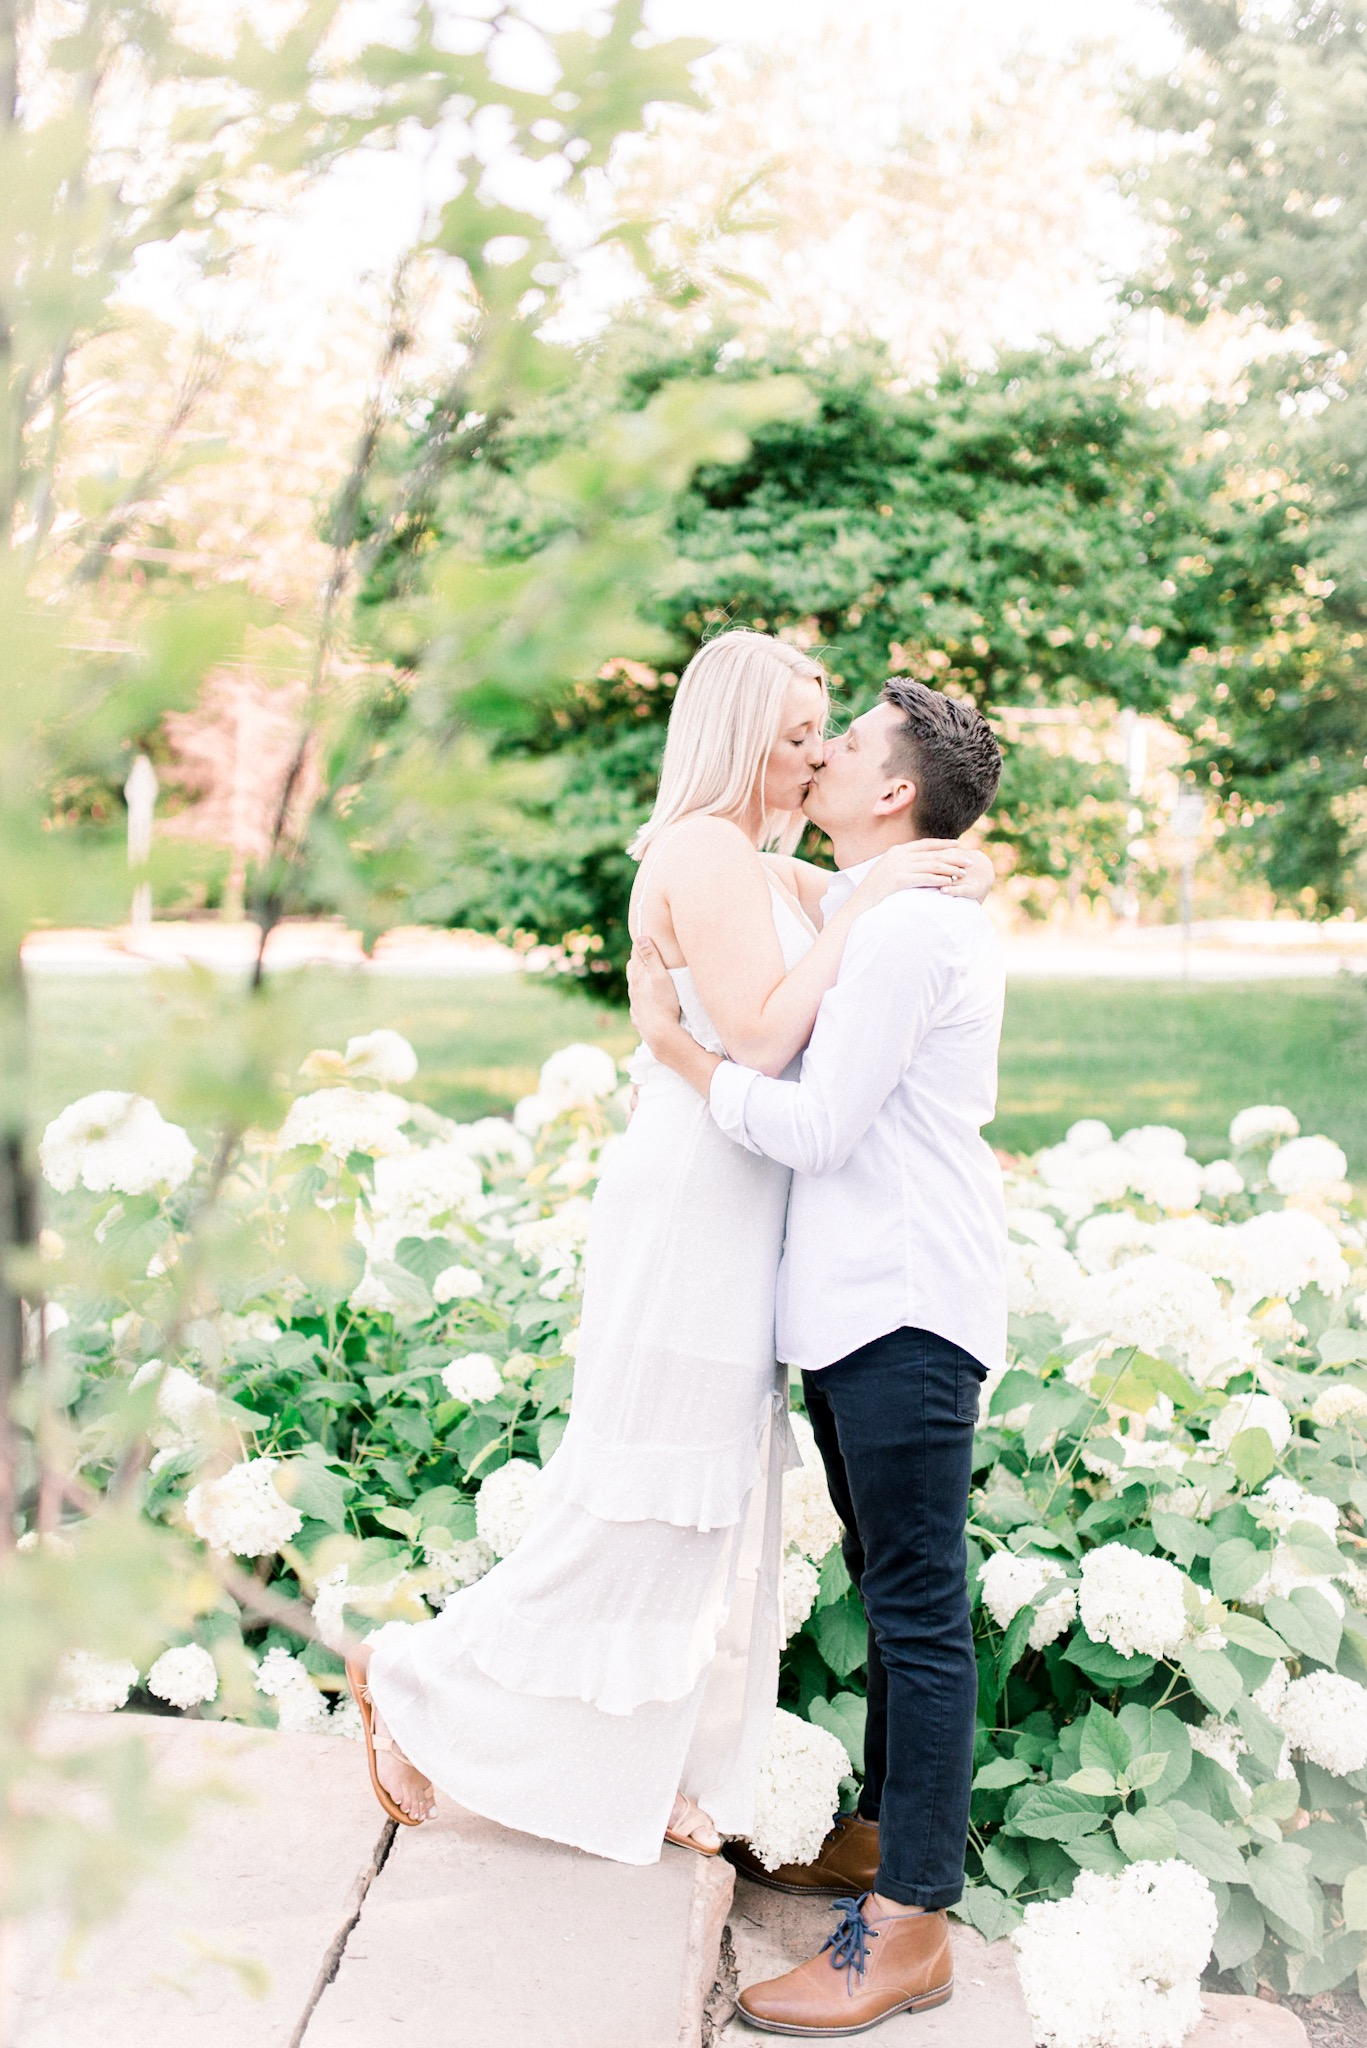 Maria + Josh   Warm and Cozy Summer Engagement in Carmel, IN   Indianapolis Wedding Photographers